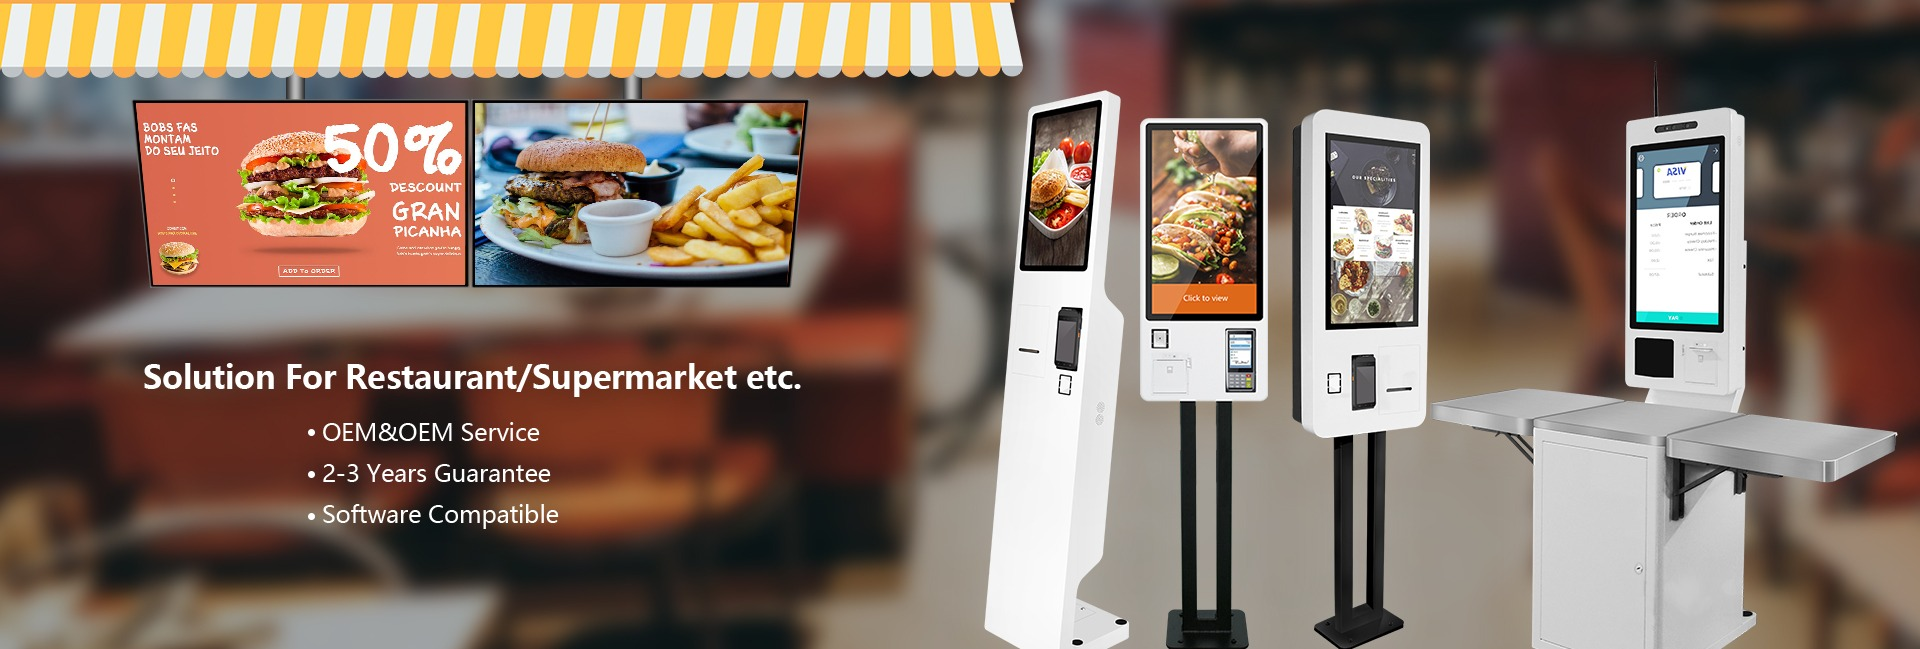 epos loyalty Digital Screens and self order kiosk